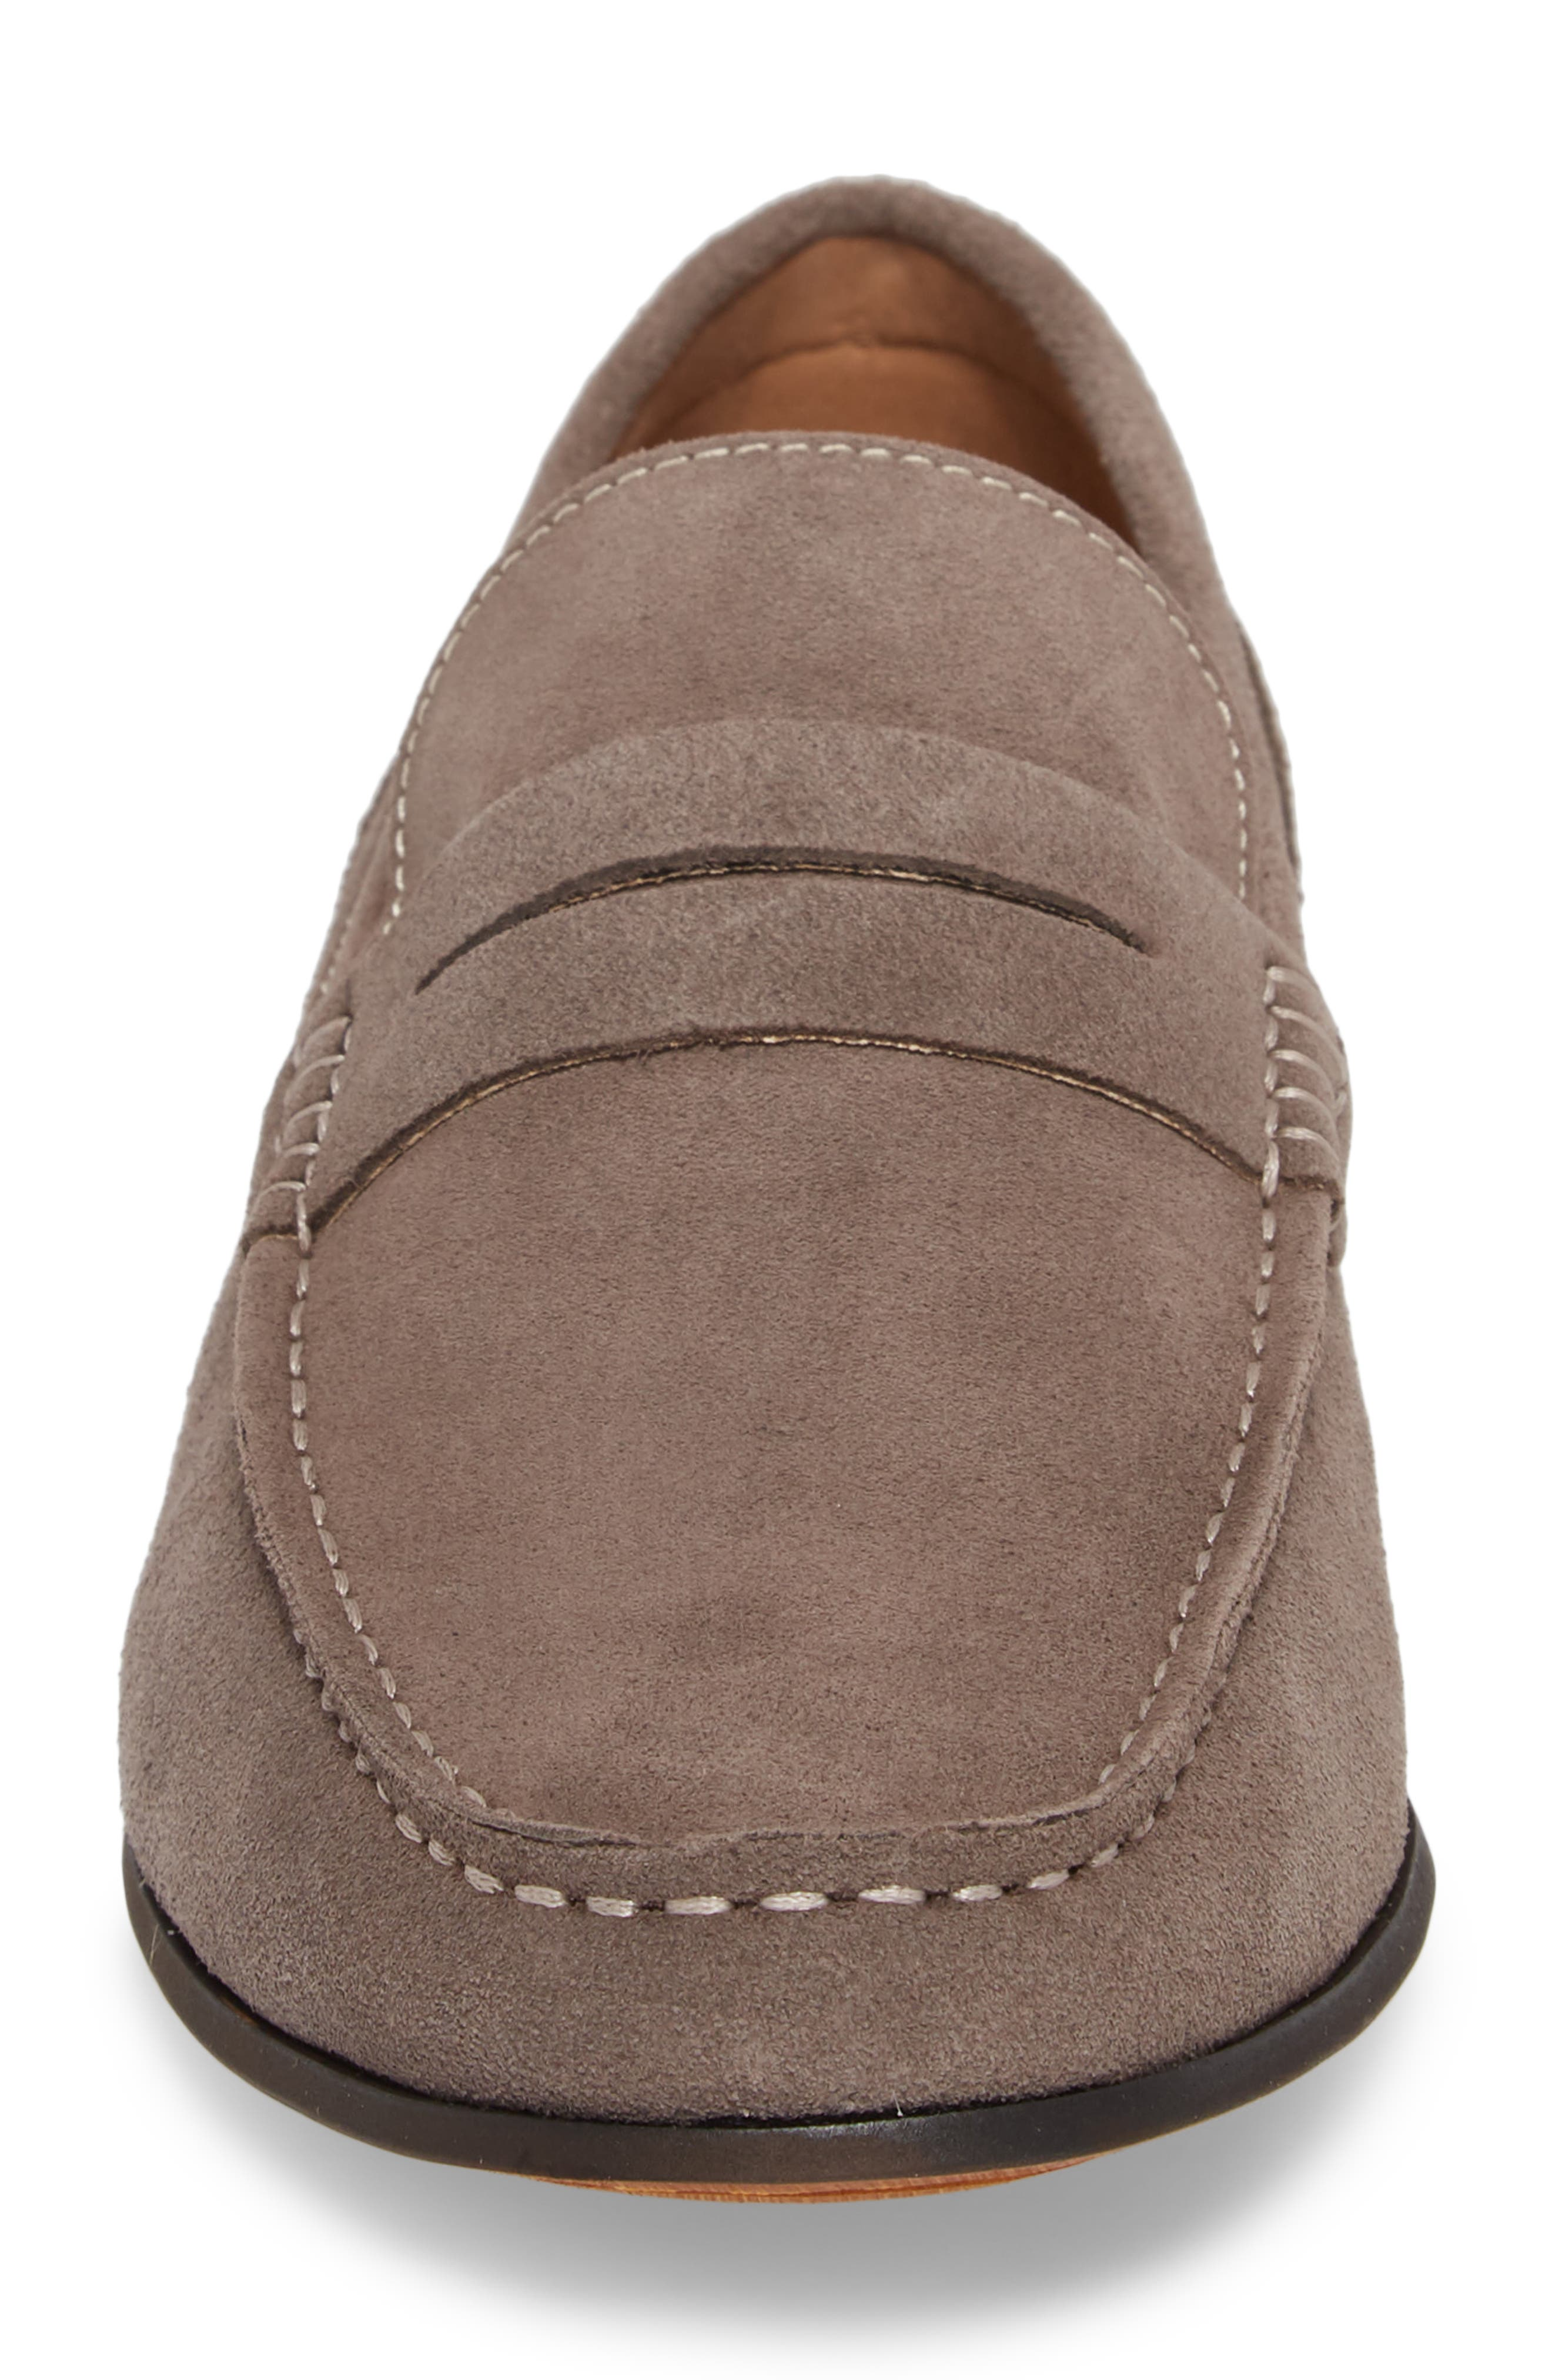 Crespo Penny Loafer,                             Alternate thumbnail 4, color,                             020